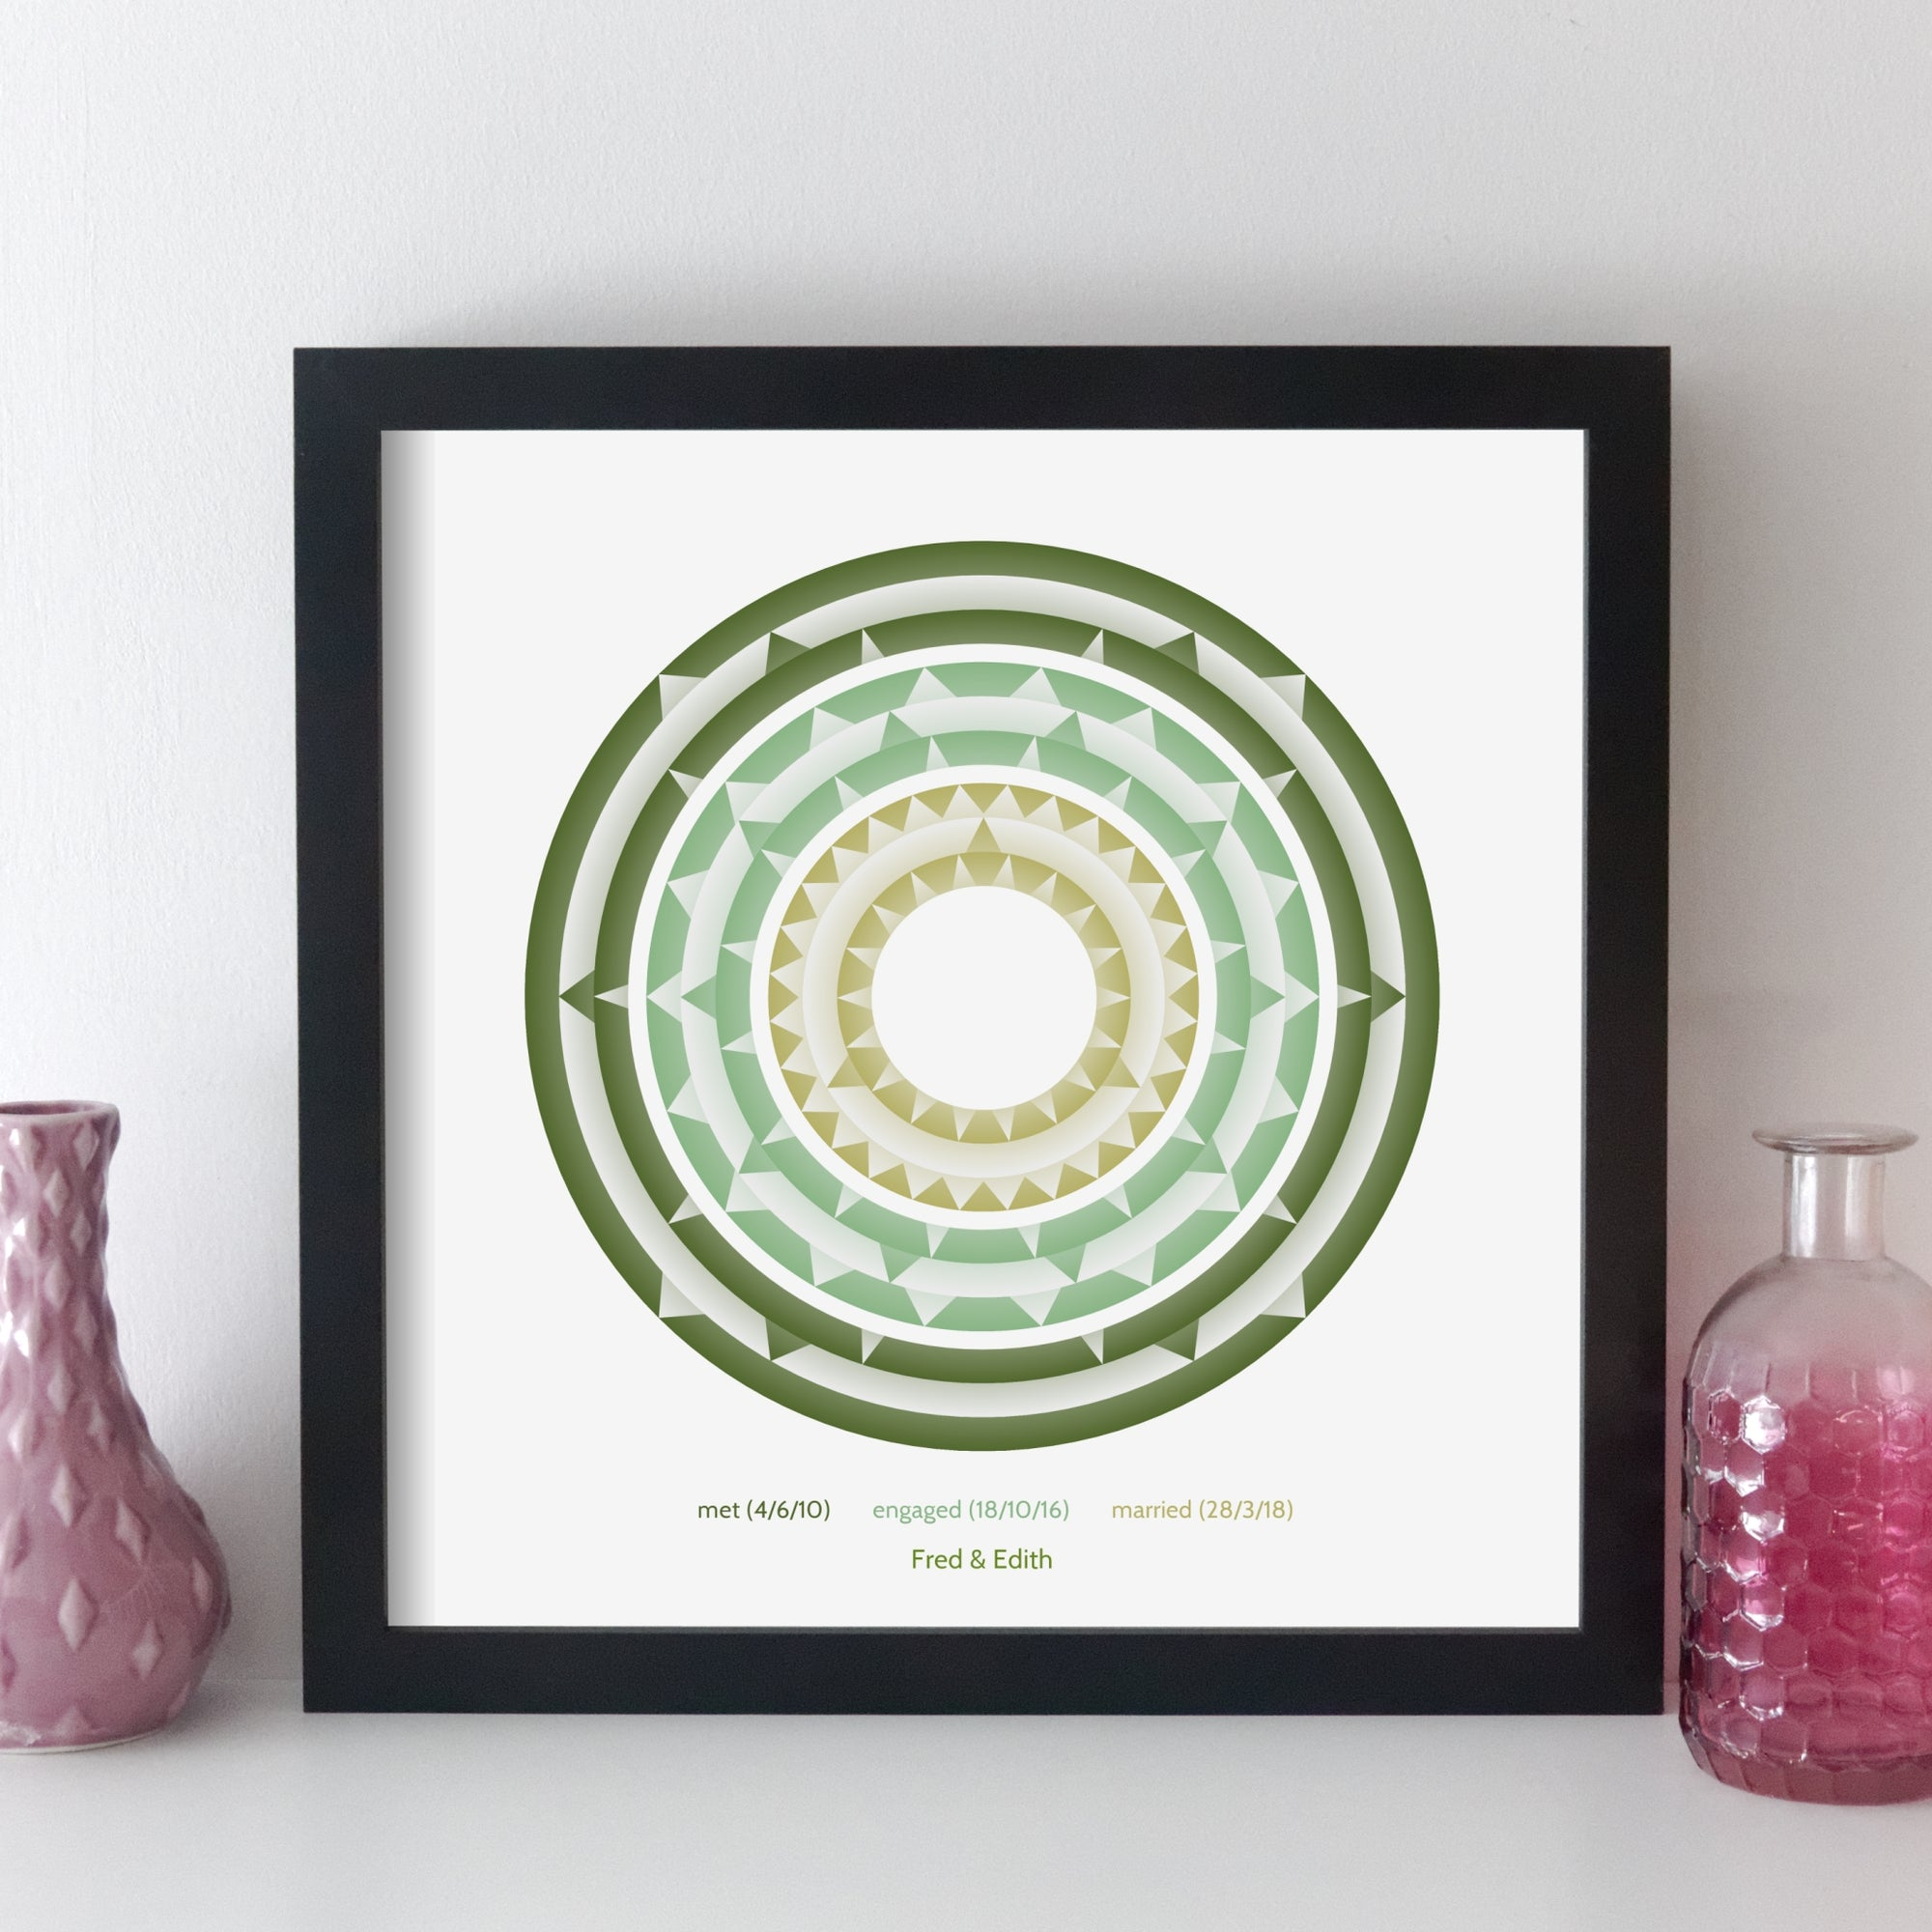 Personalised Memorable Date Wall Art - Geometric Art